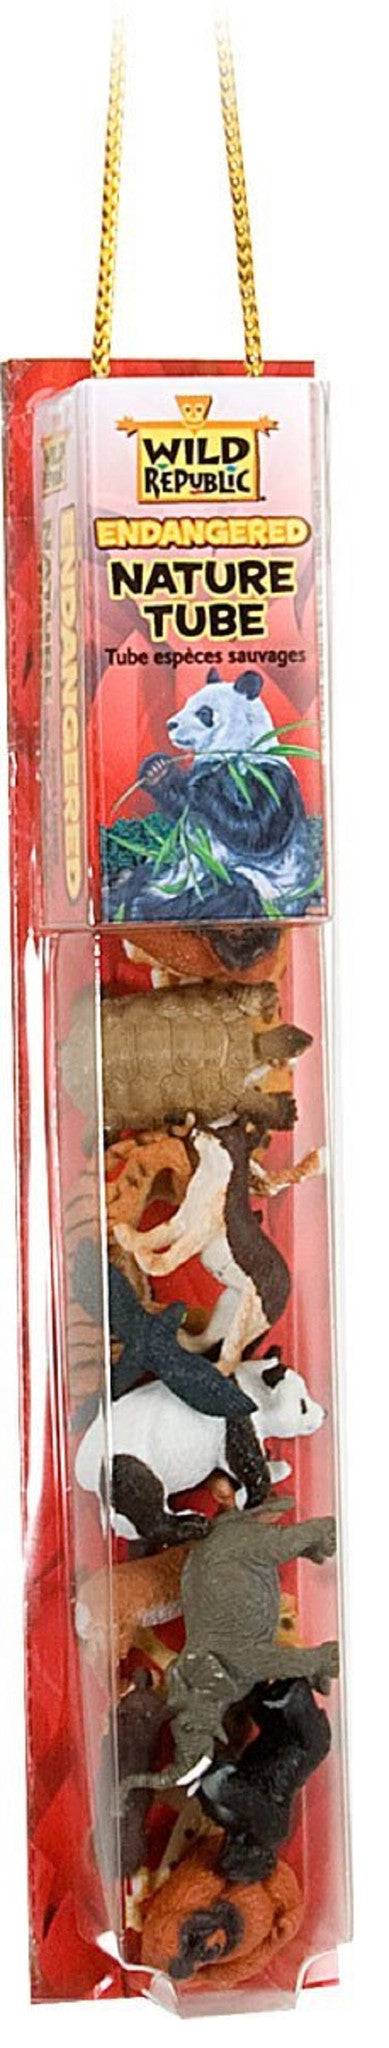 Endangered Animal Nature Tube with Play Mat by Wild Republic - Off The Wall Toys and Gifts